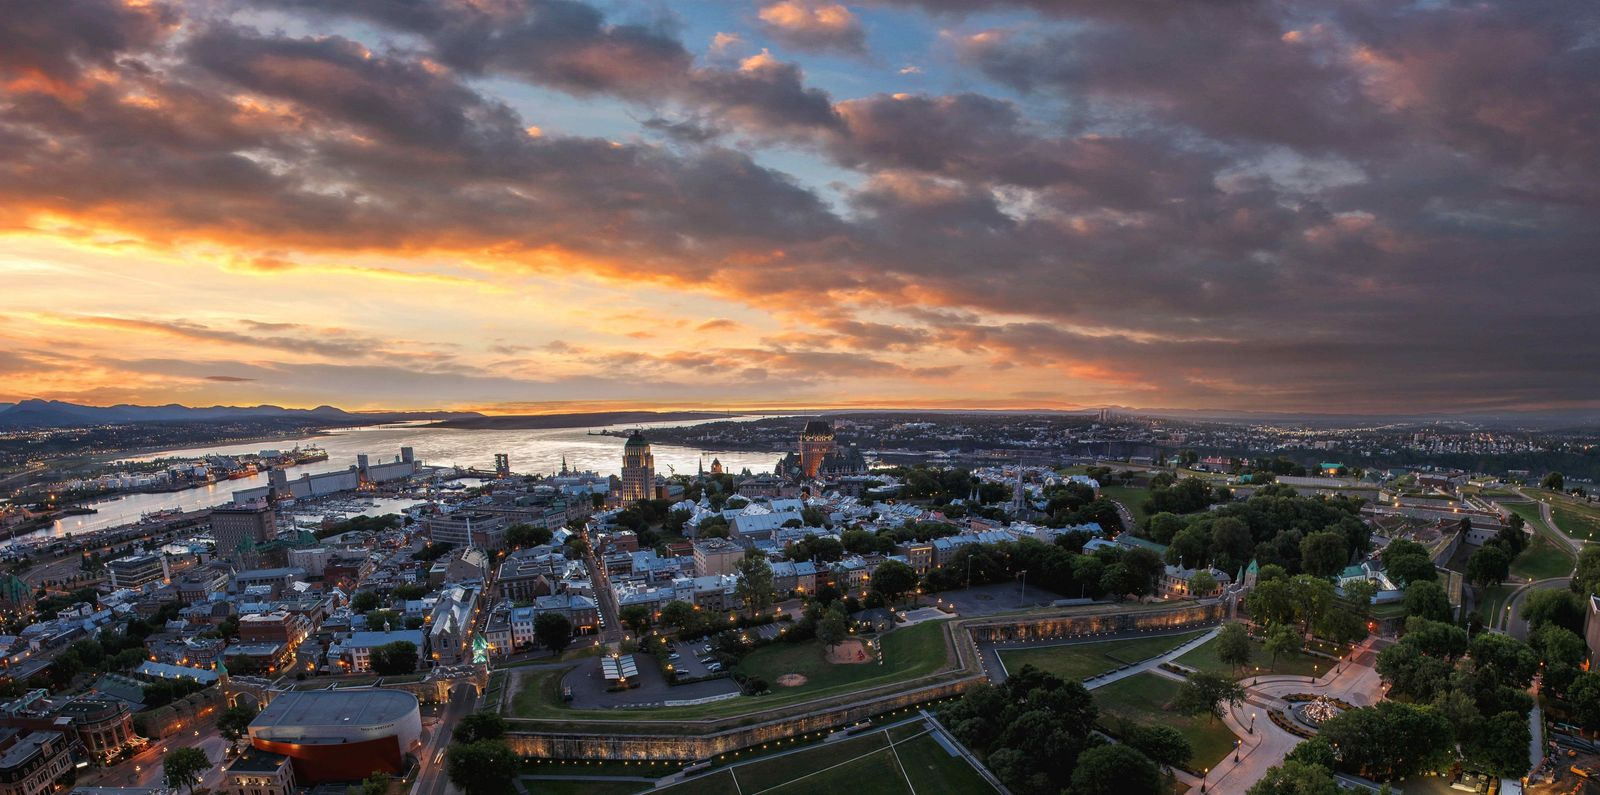 View of Québec City and the St. Lawrence River at sunset.